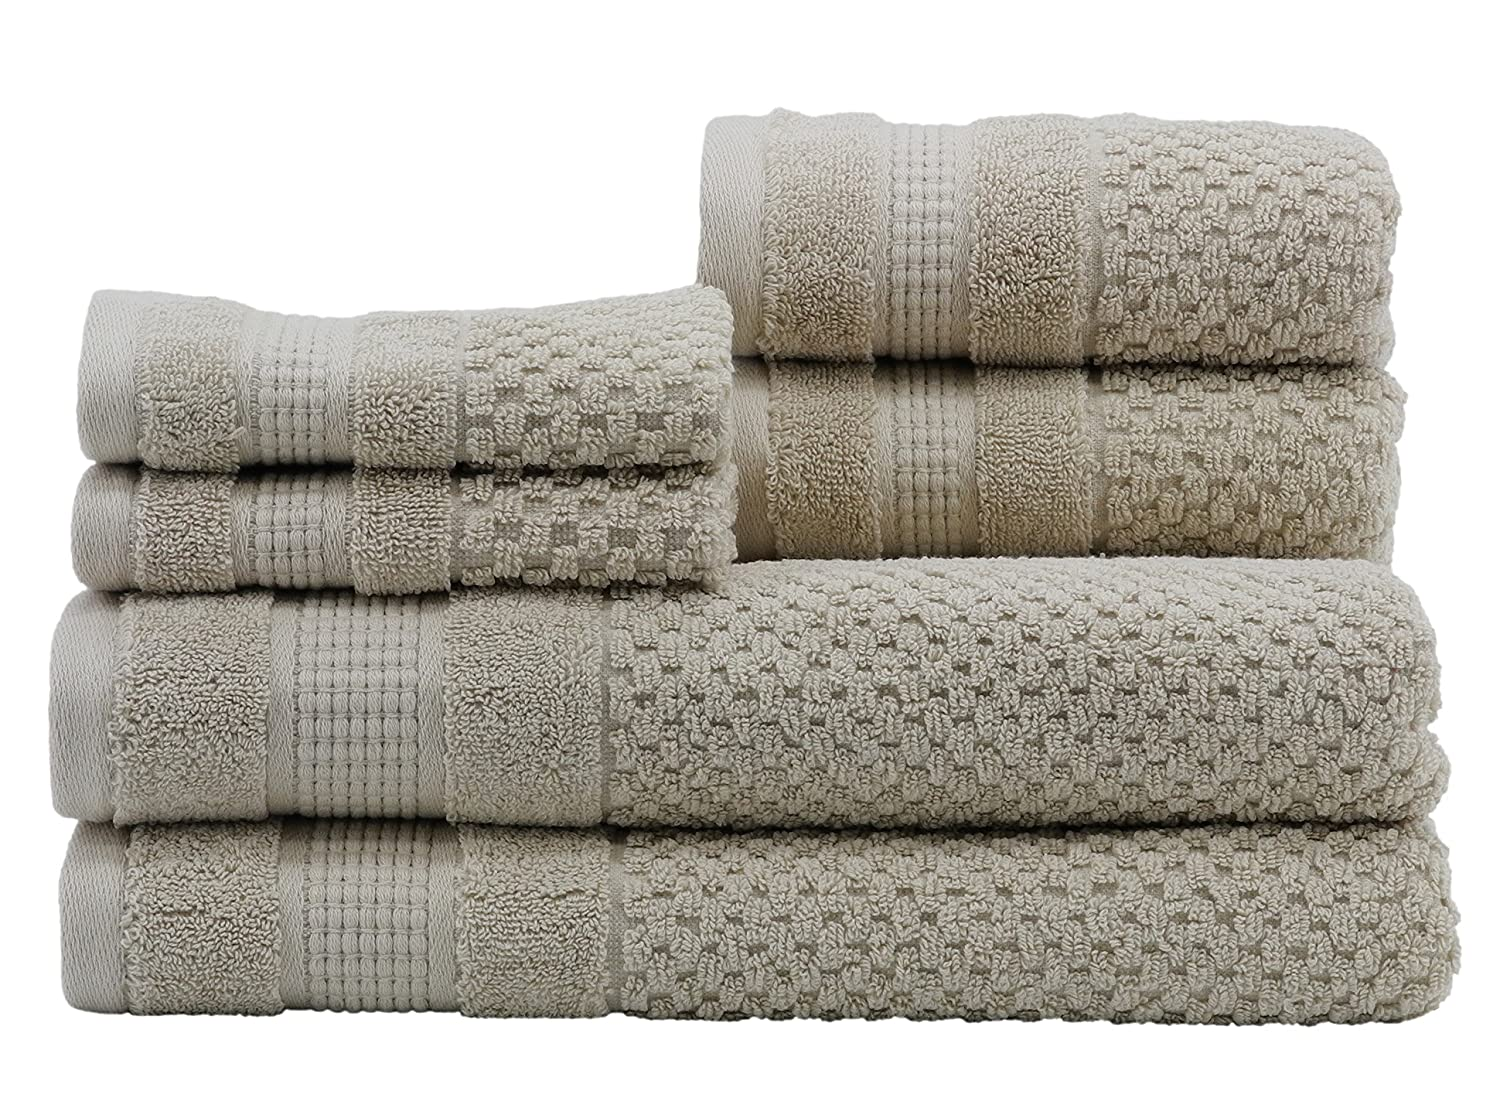 Caro Home Pebble 6 Piece Bath Towel Set, Large, Oat 6S1372T4450